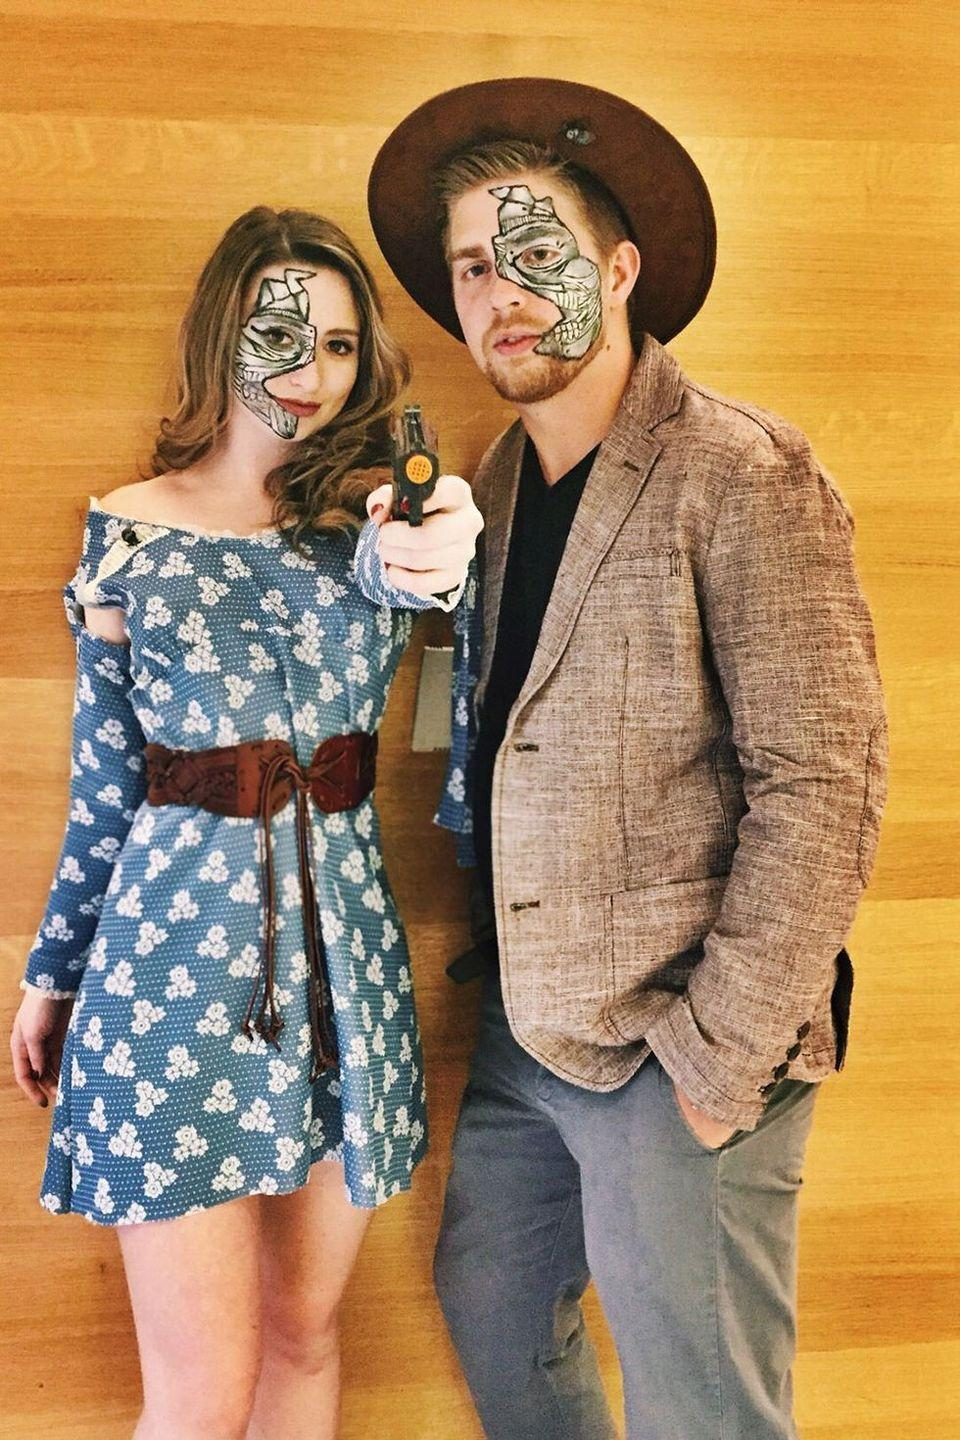 <p>If HBO's <em>Westworld</em> is your the definitive water color show in your office, you can pair your favorite Old West-looking wear with a little robot makeup — just don't share any spoilers!</p>